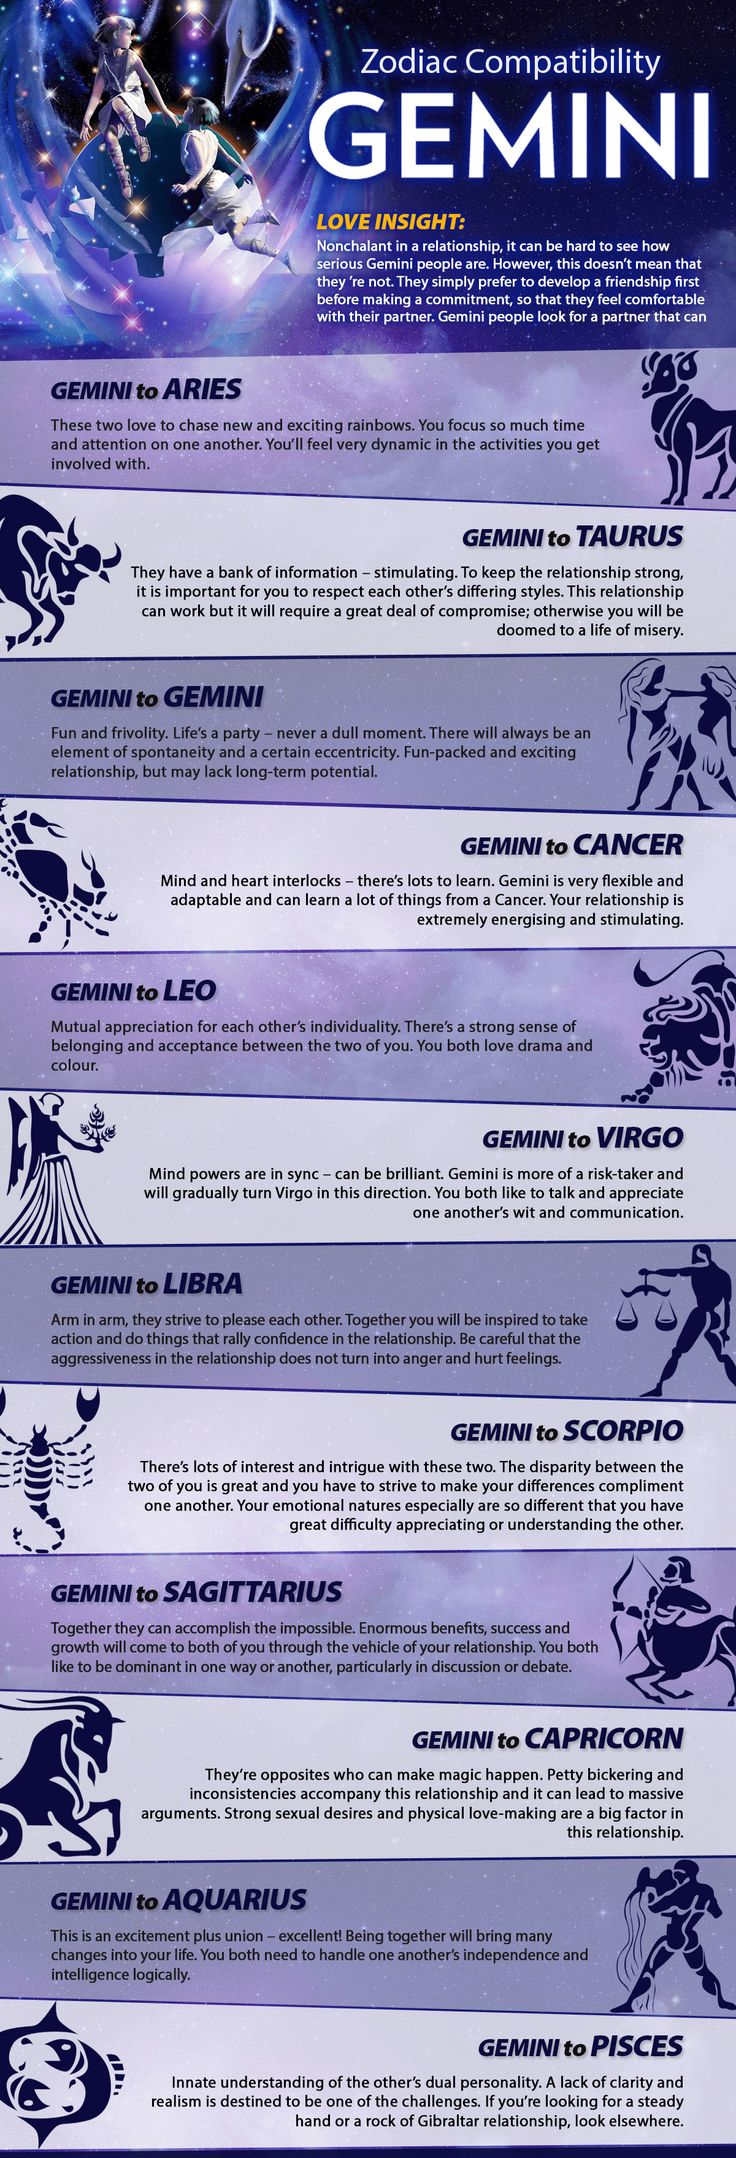 I can't get over how accurate these Gemini posts are!!!